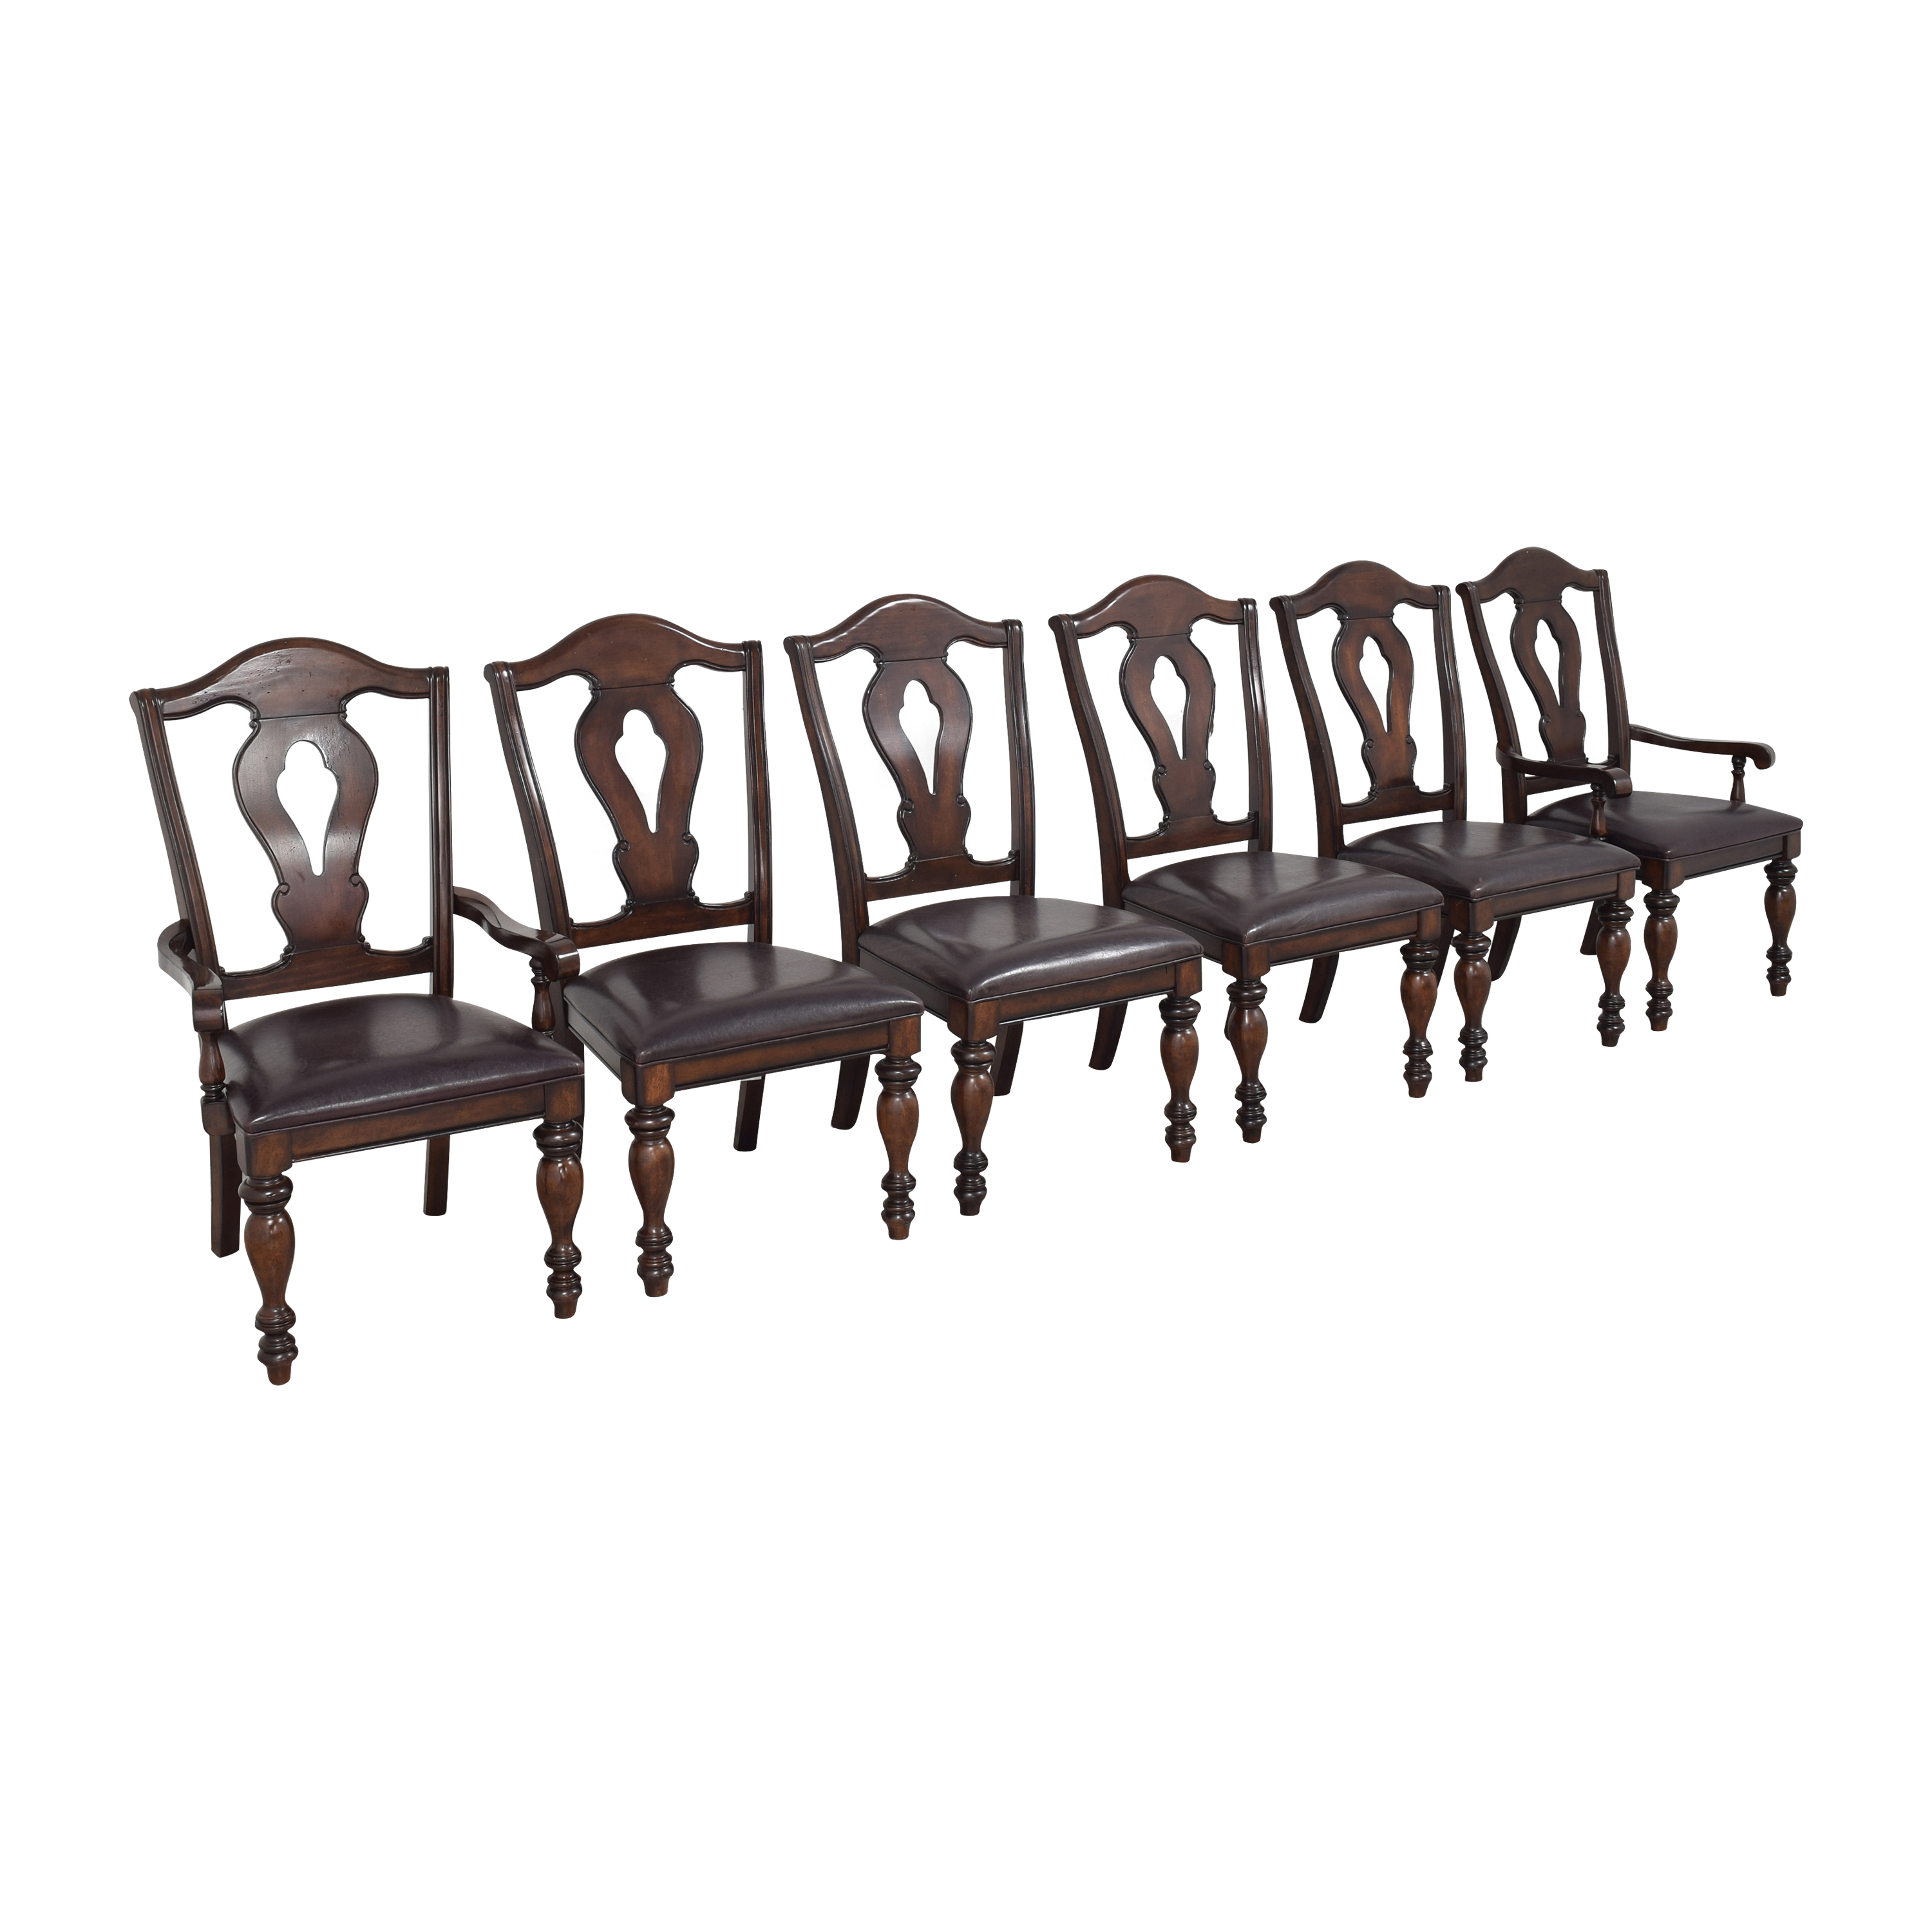 buy Legacy Classic Furniture Legacy Classic Furniture Dining Chairs online